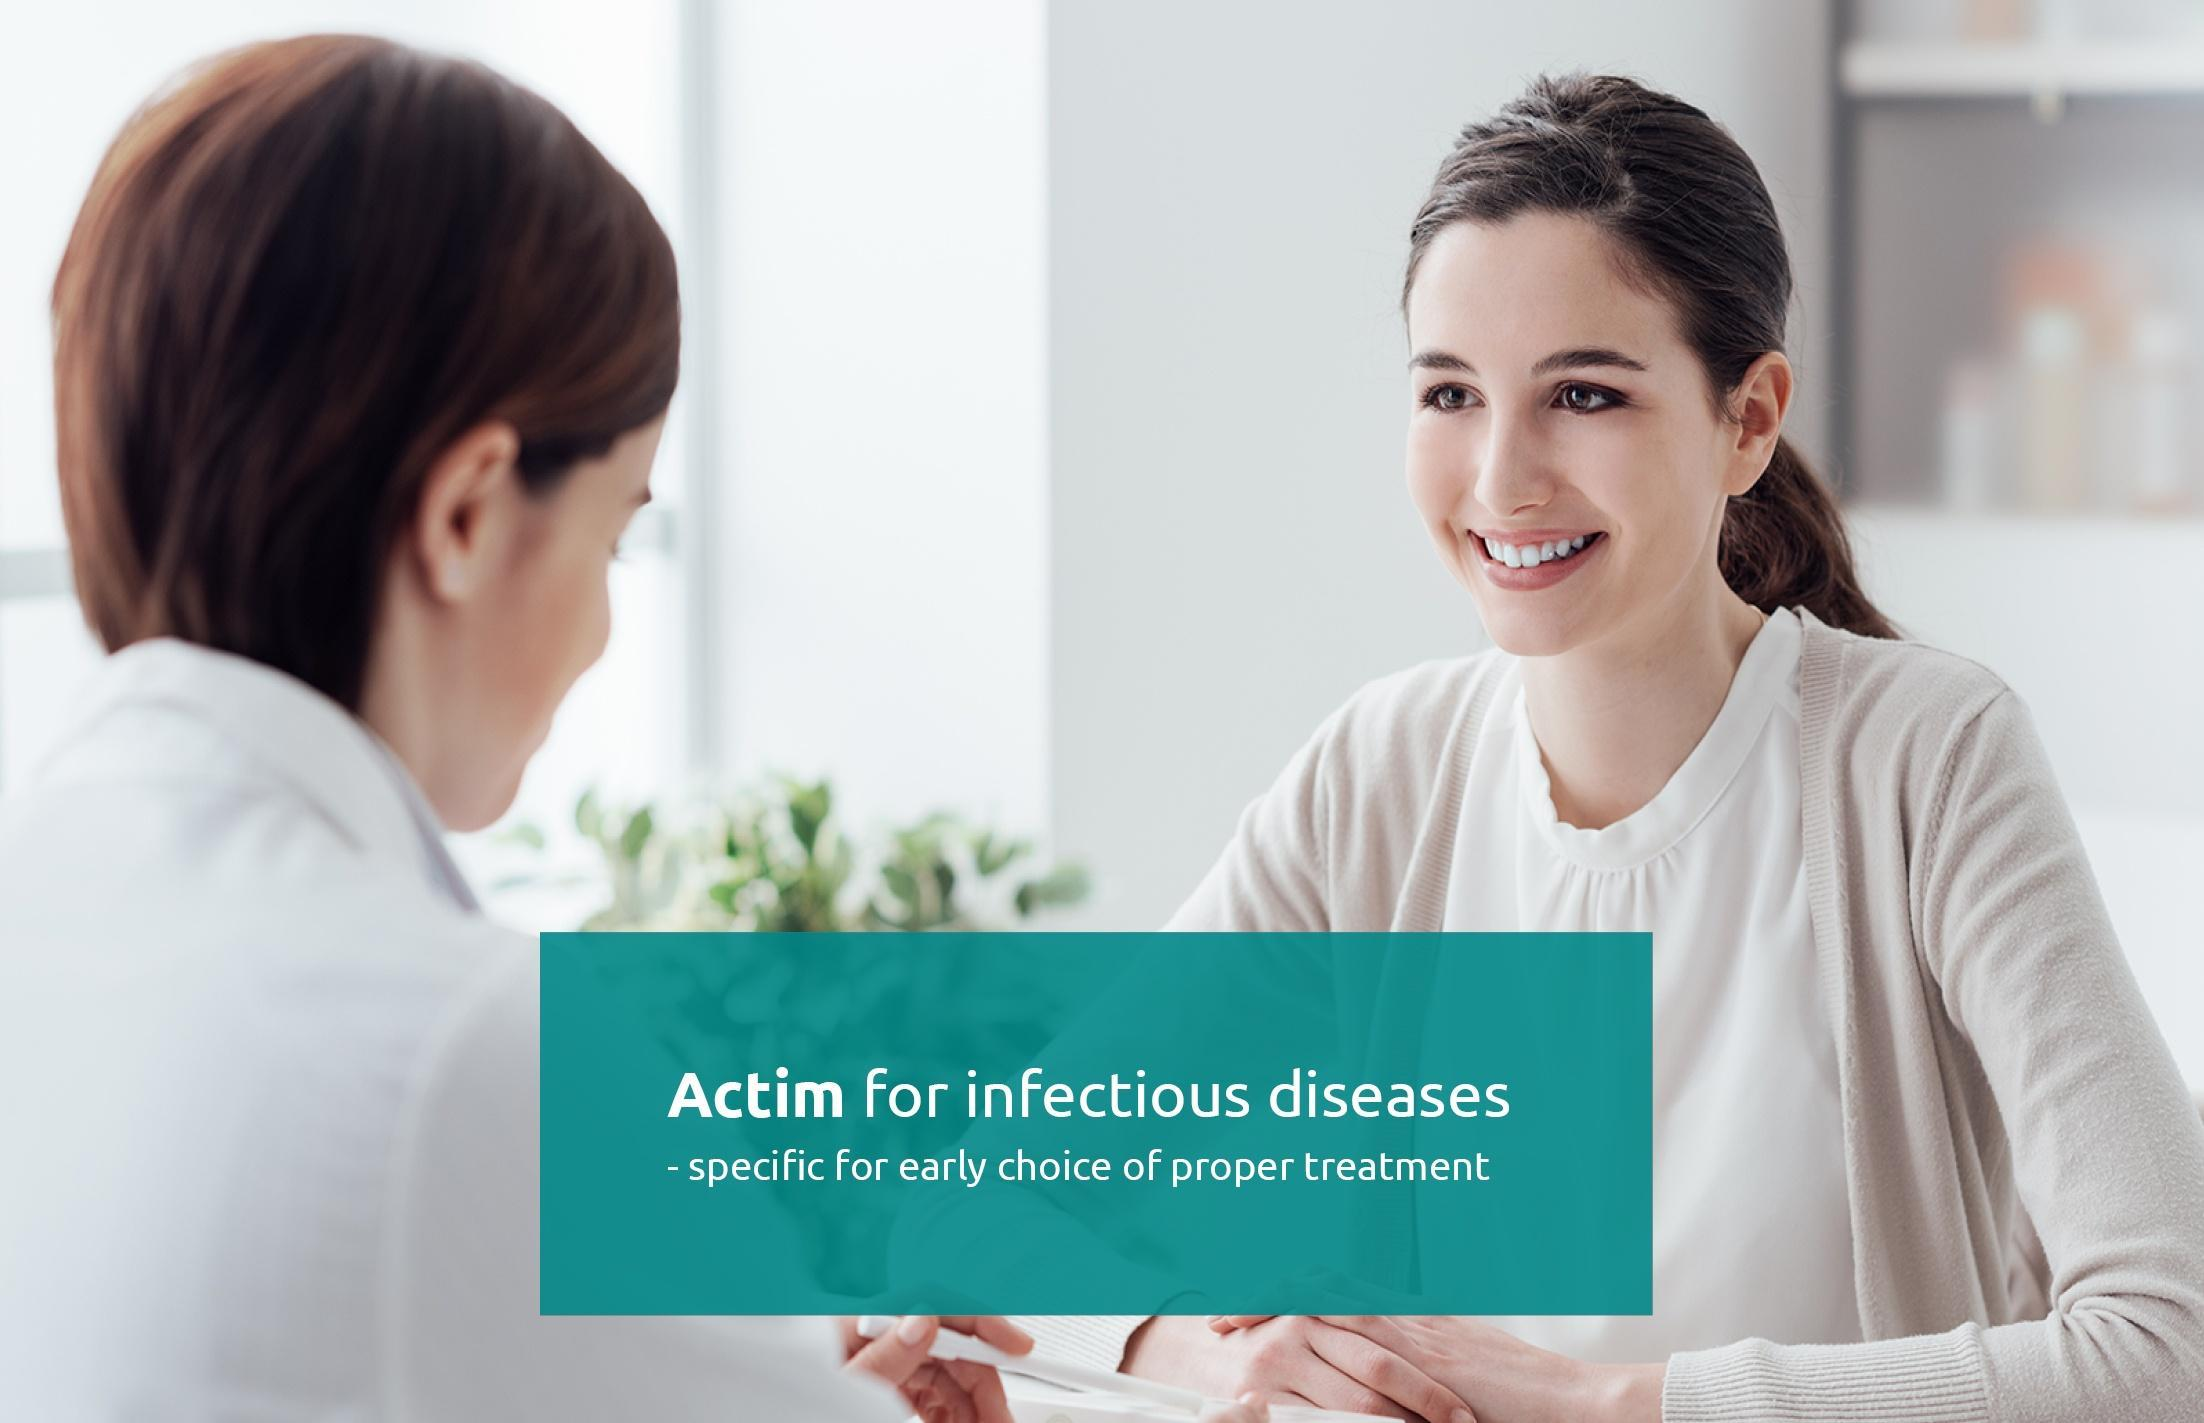 Actim for infectious diseases 2020